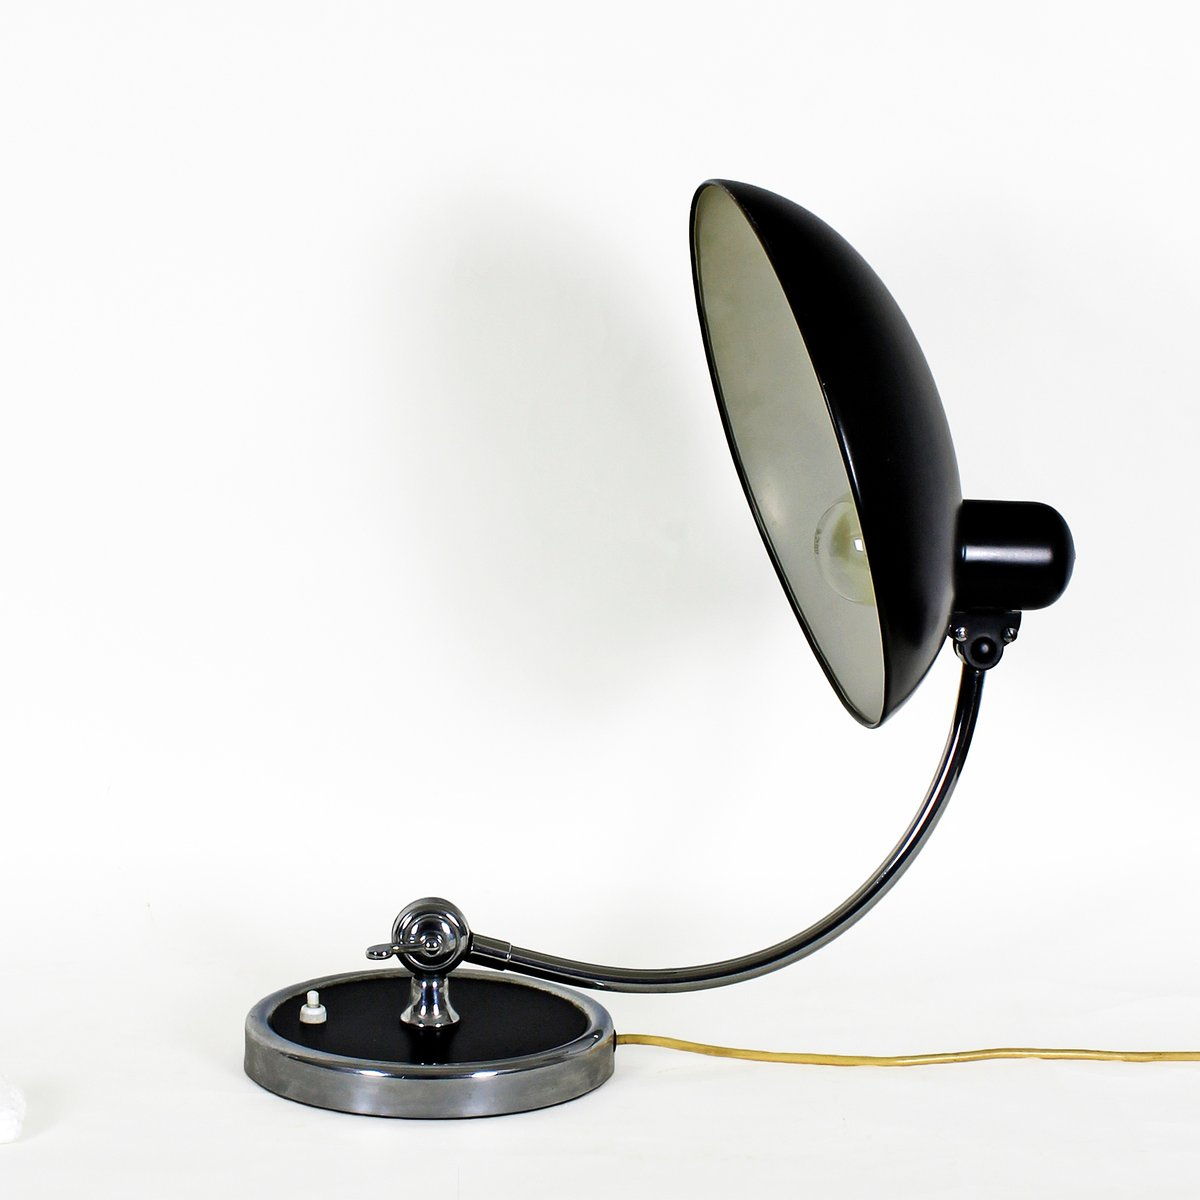 kaiser idell luxus 6631 desk lamp by christian dell for kaiser idell 1931 for sale at pamono. Black Bedroom Furniture Sets. Home Design Ideas